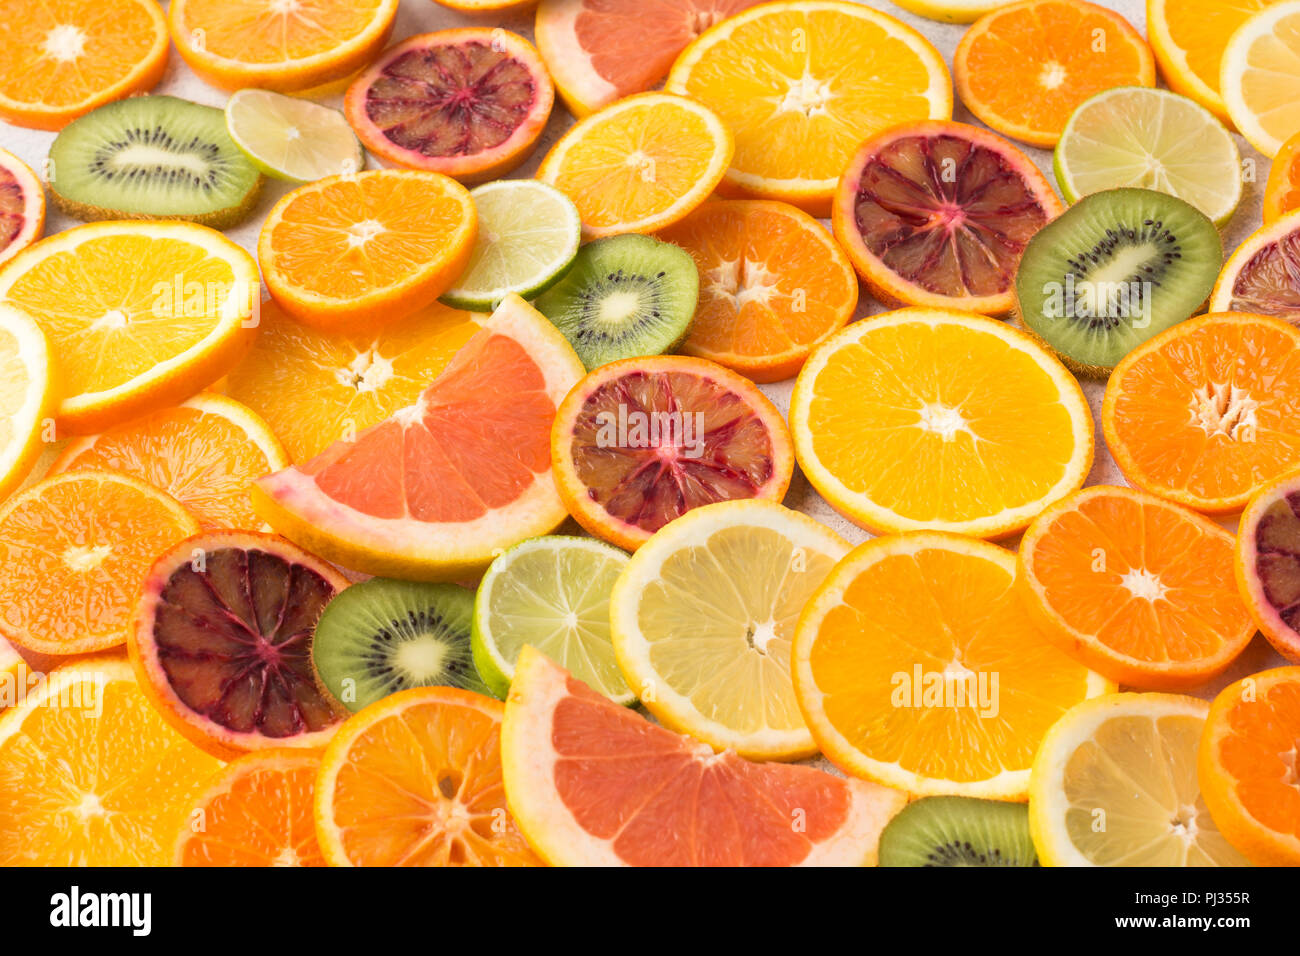 Colourful fruits background oranges, clementines, blood oranges, kiwis and grapefruits on white table, selective focus - Stock Image